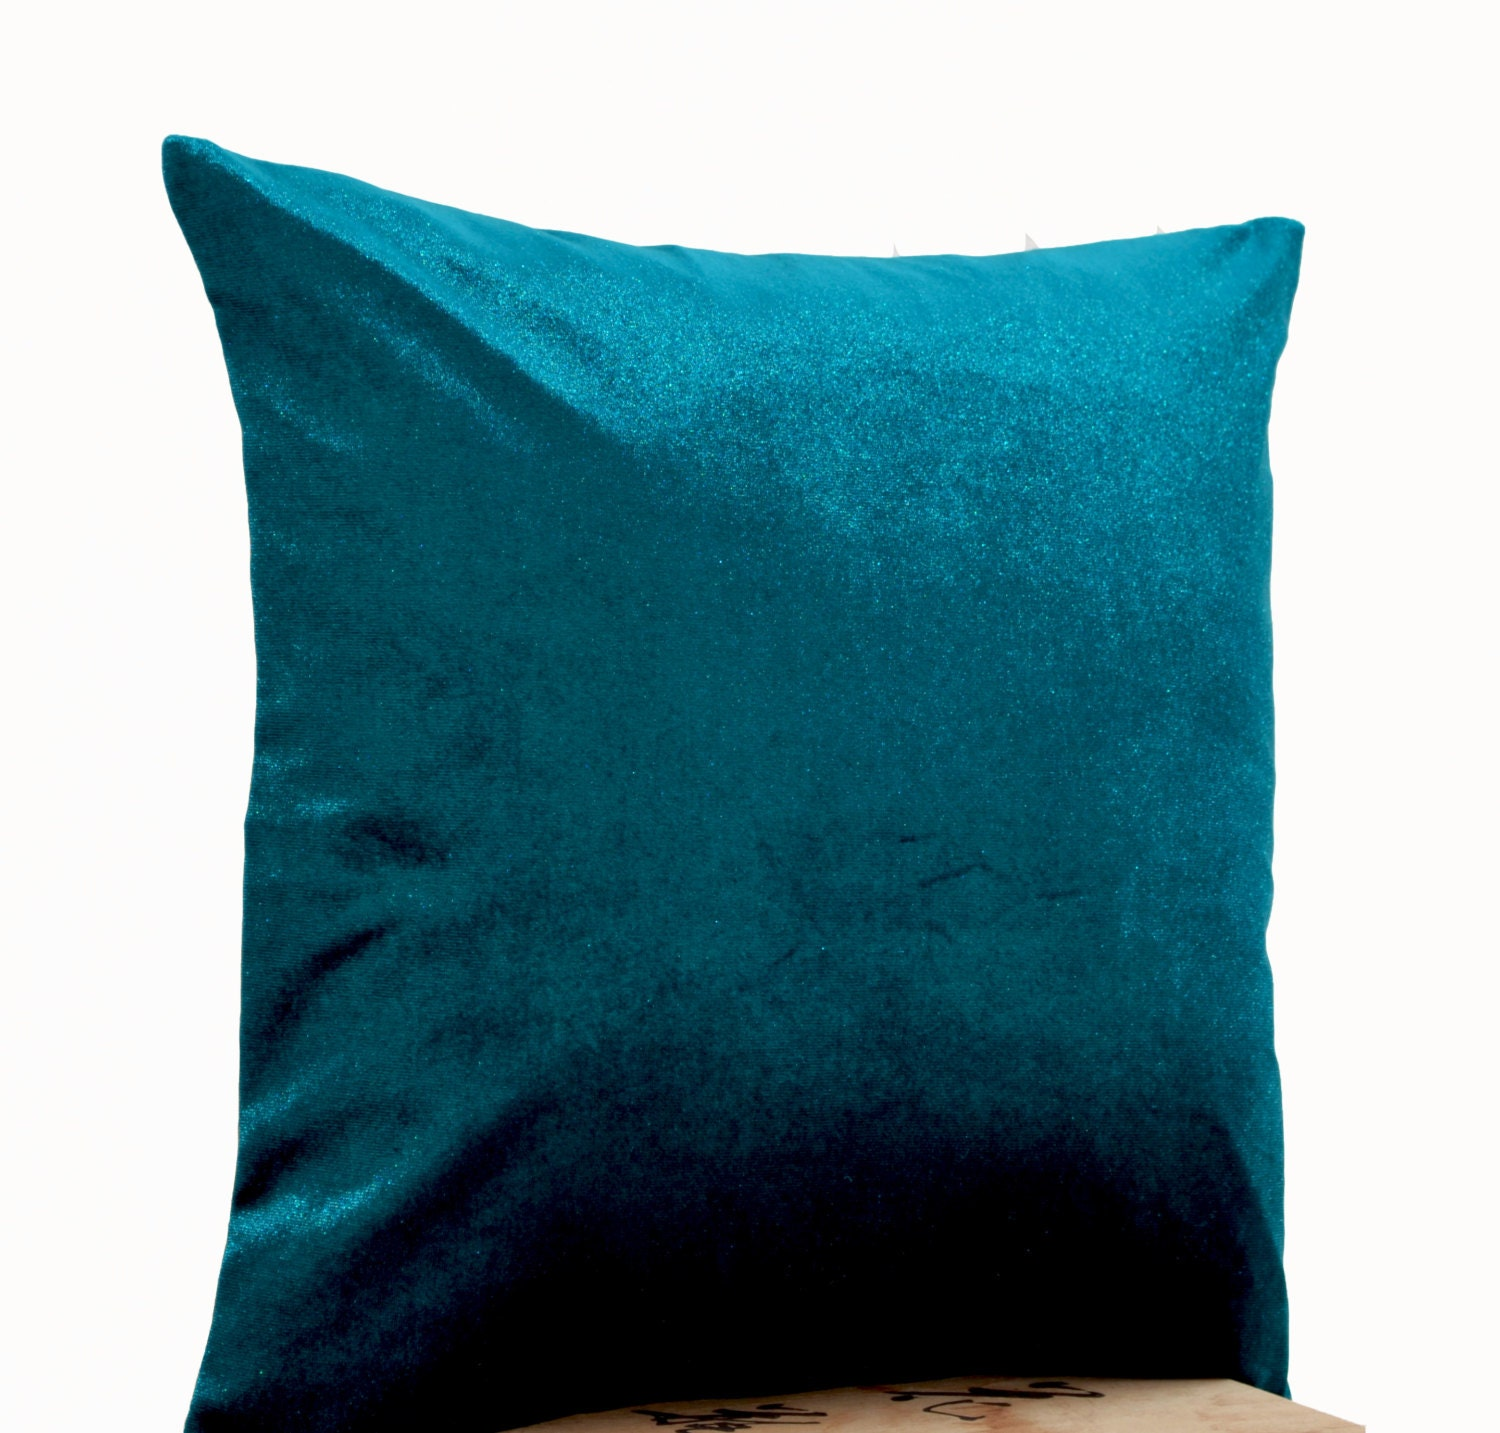 Lush Teal Velvet Oatmeal Linen Pillow Teal Pillow Case